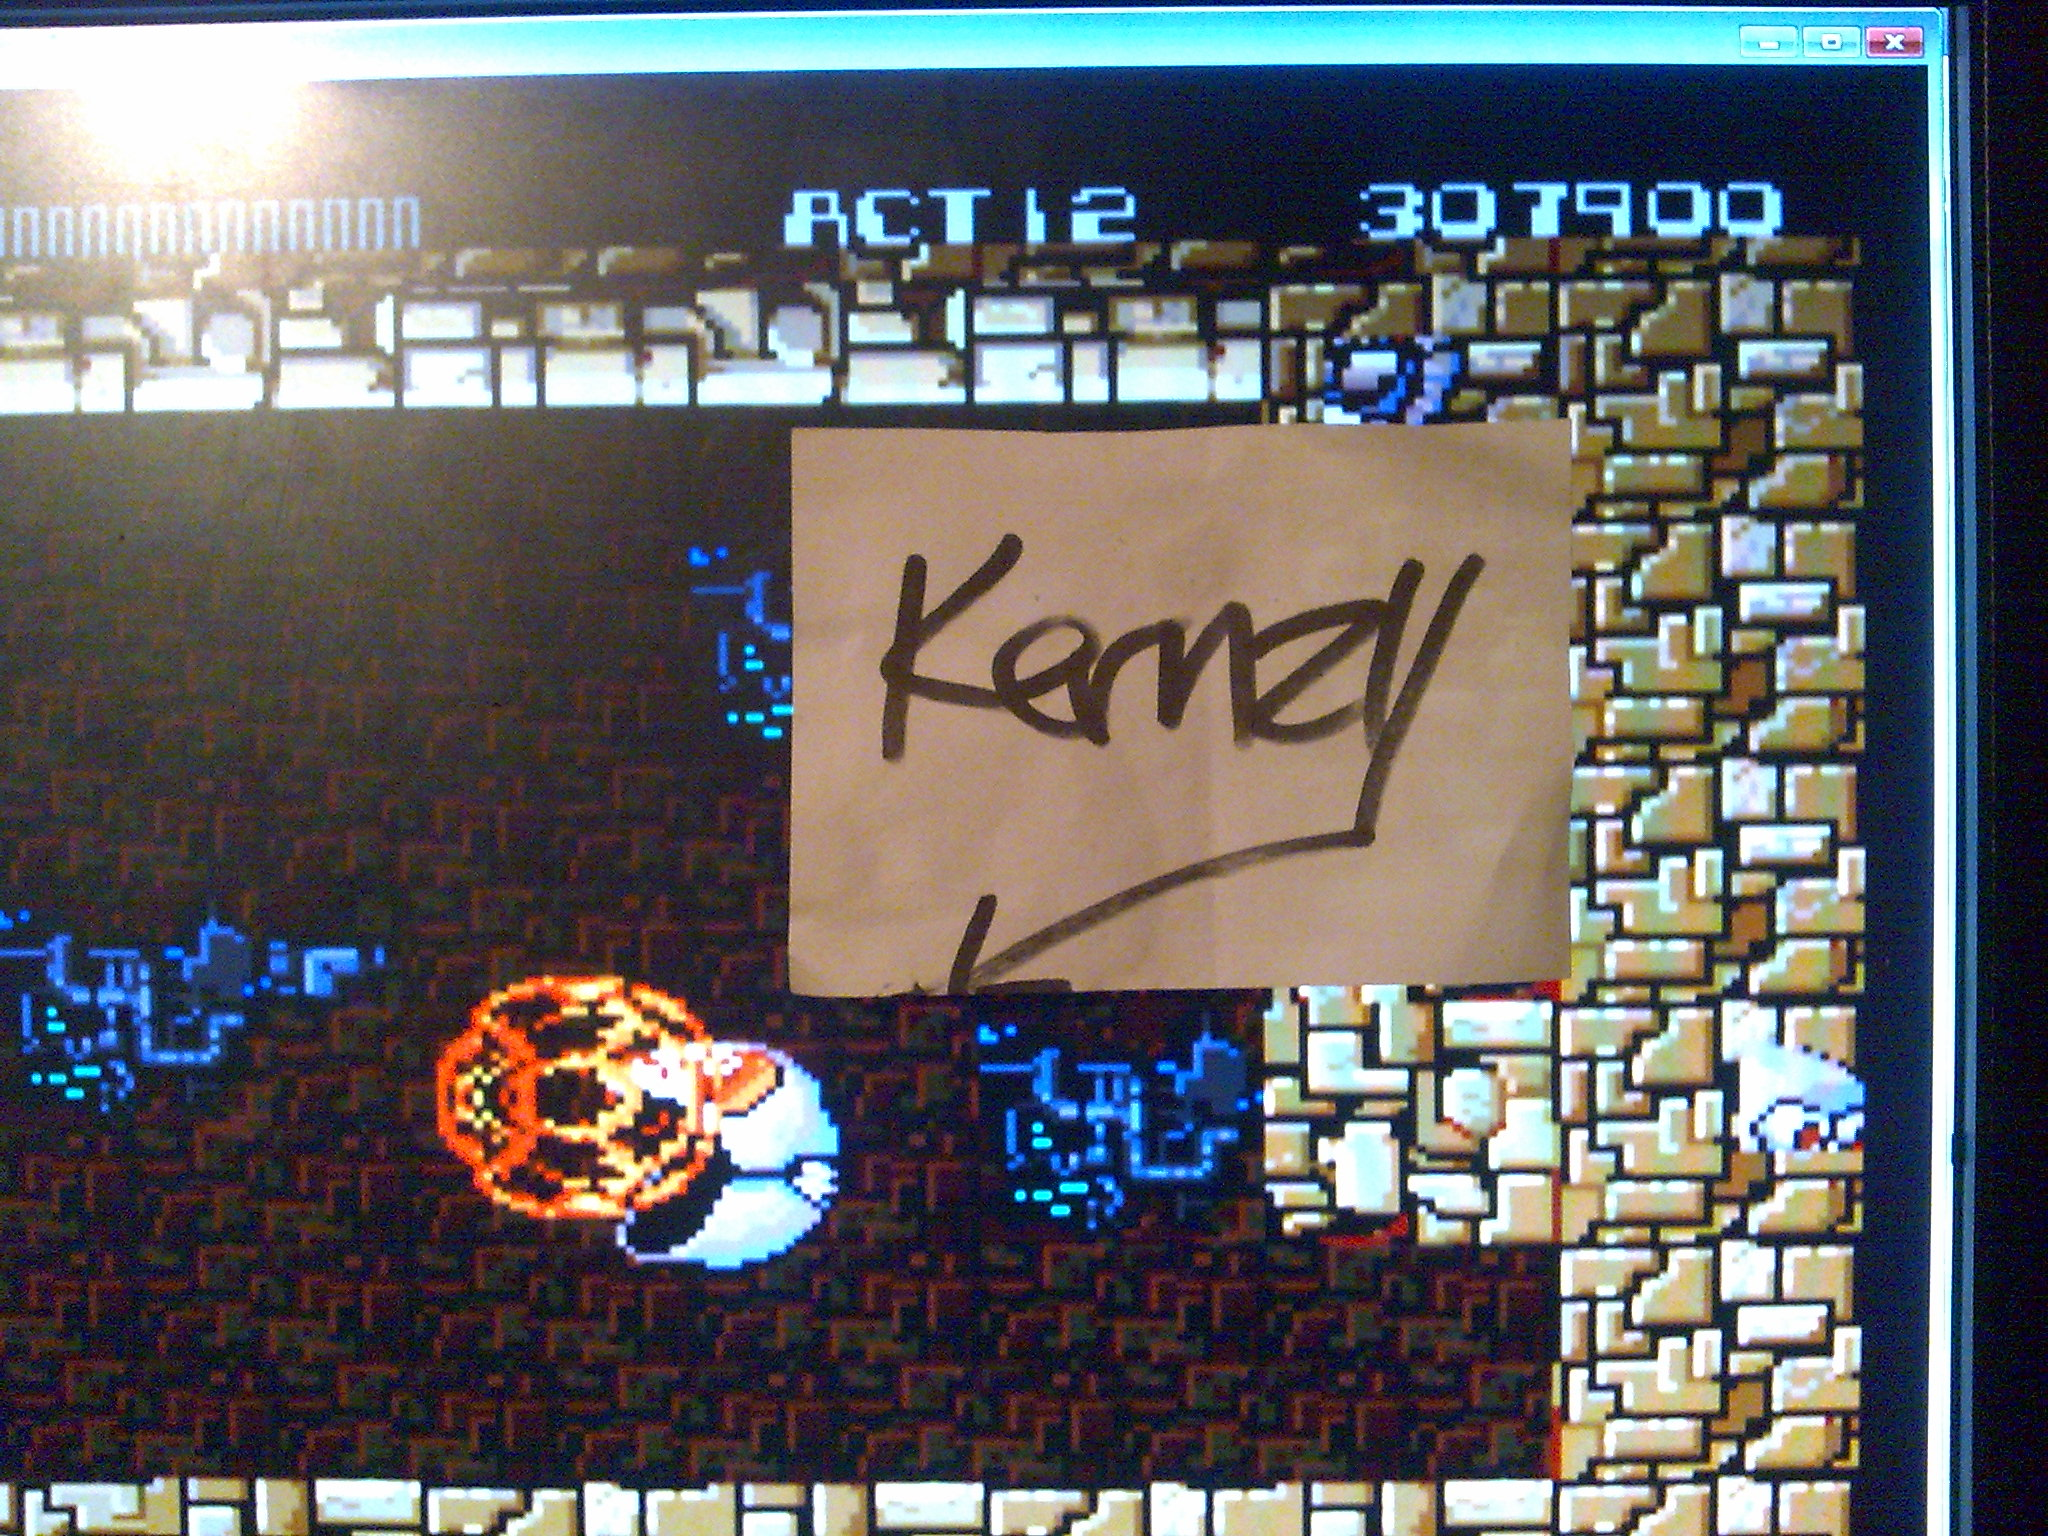 kernzy: Atomic Robo-Kid Special (TurboGrafx-16/PC Engine Emulated) 307,900 points on 2014-10-22 15:21:34